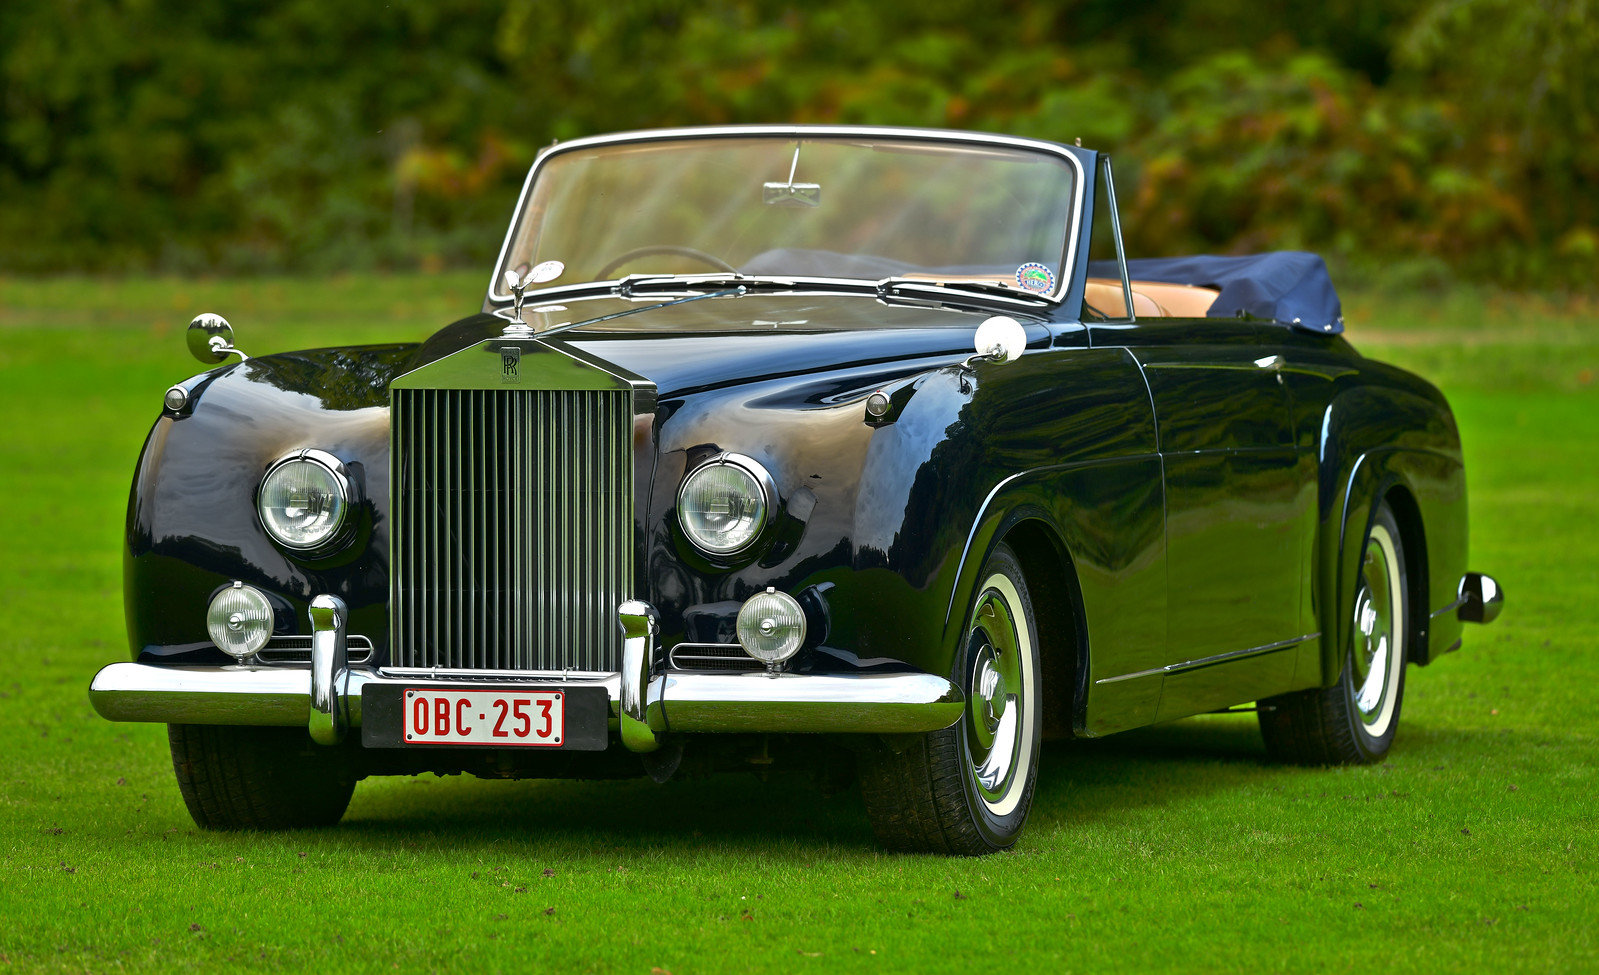 1957 Rolls Royce Silver Cloud 1 Drop Head Coupe. For Sale (picture 1 of 6)